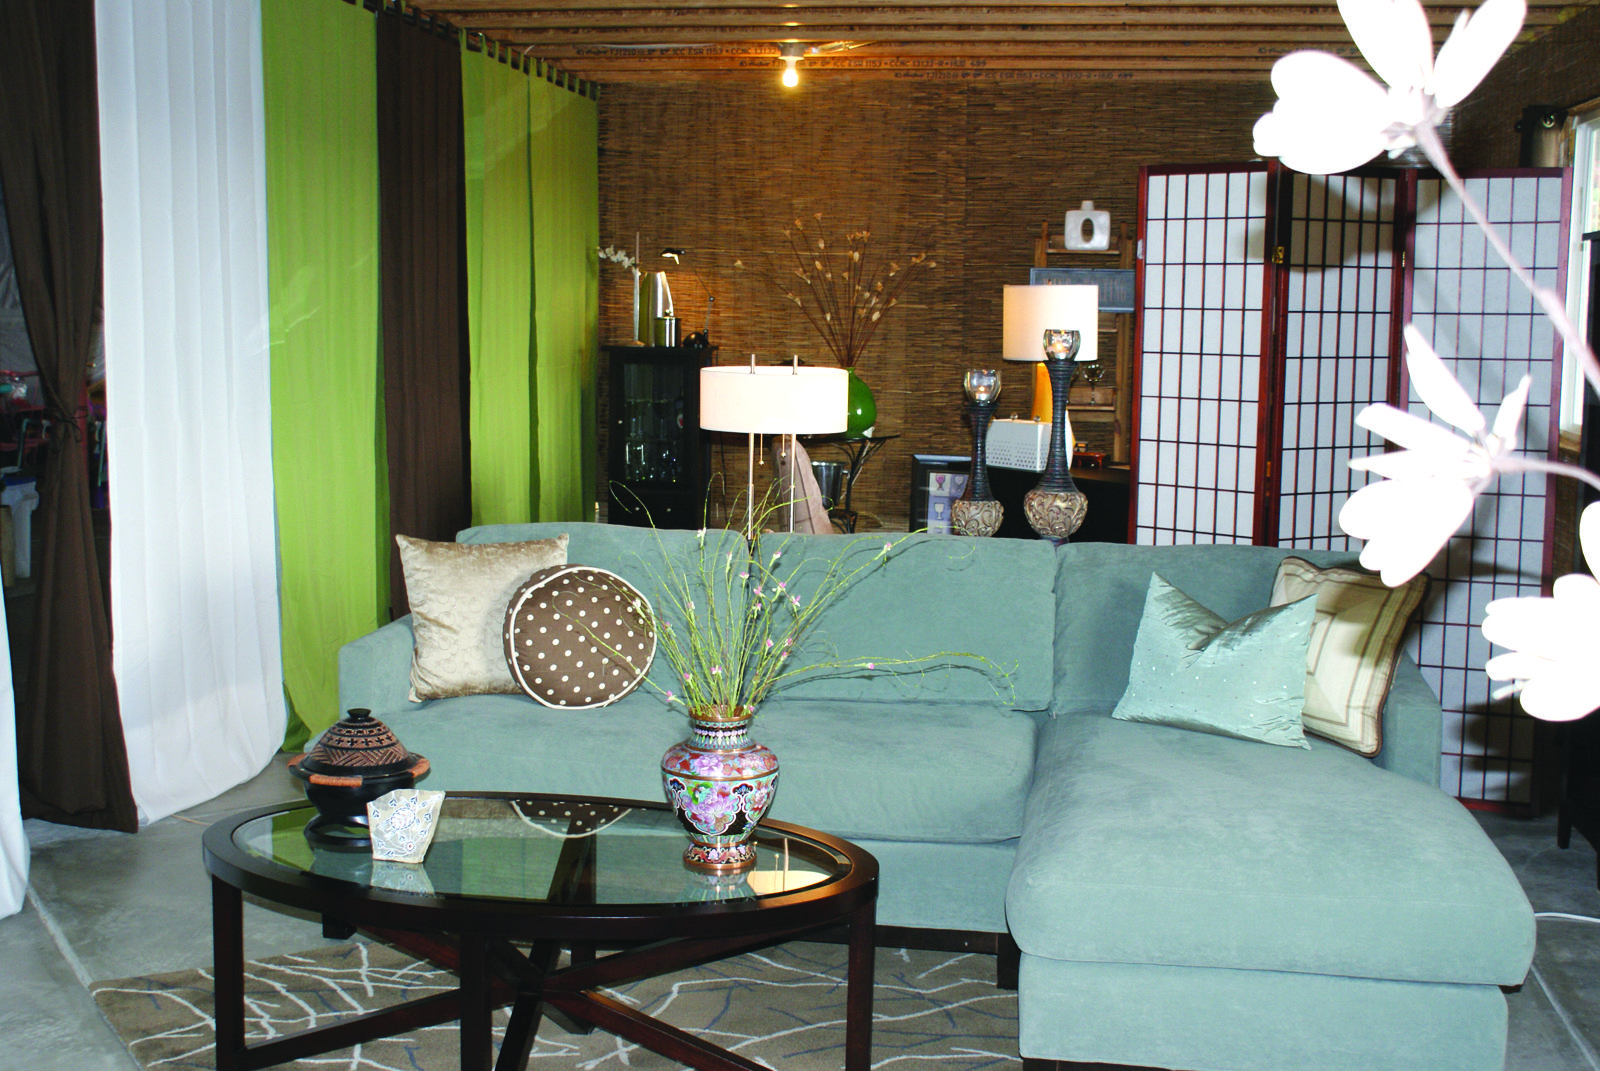 Unfinished Basement Curtain Walls And Oversized Area Rug Movie Room Idea In The